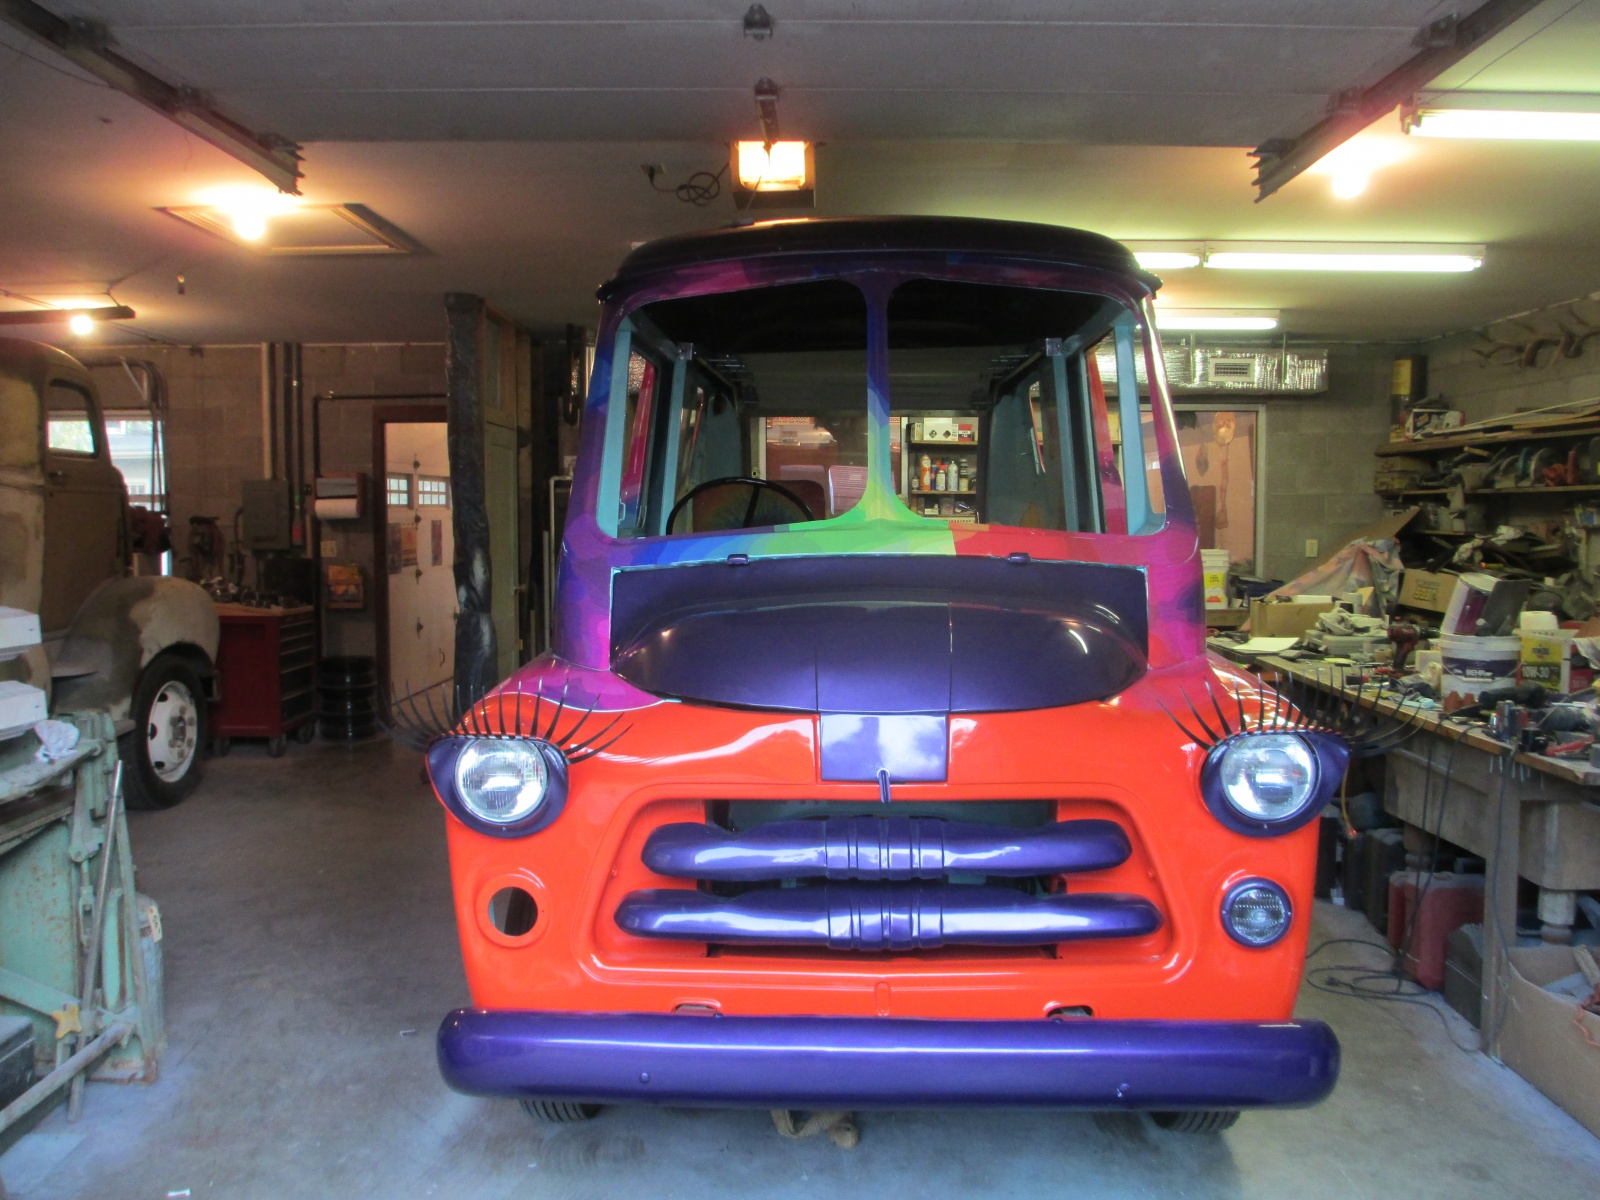 The Short Bus Dodge Postal Delivery Van 1949 Panel Here Is Front View